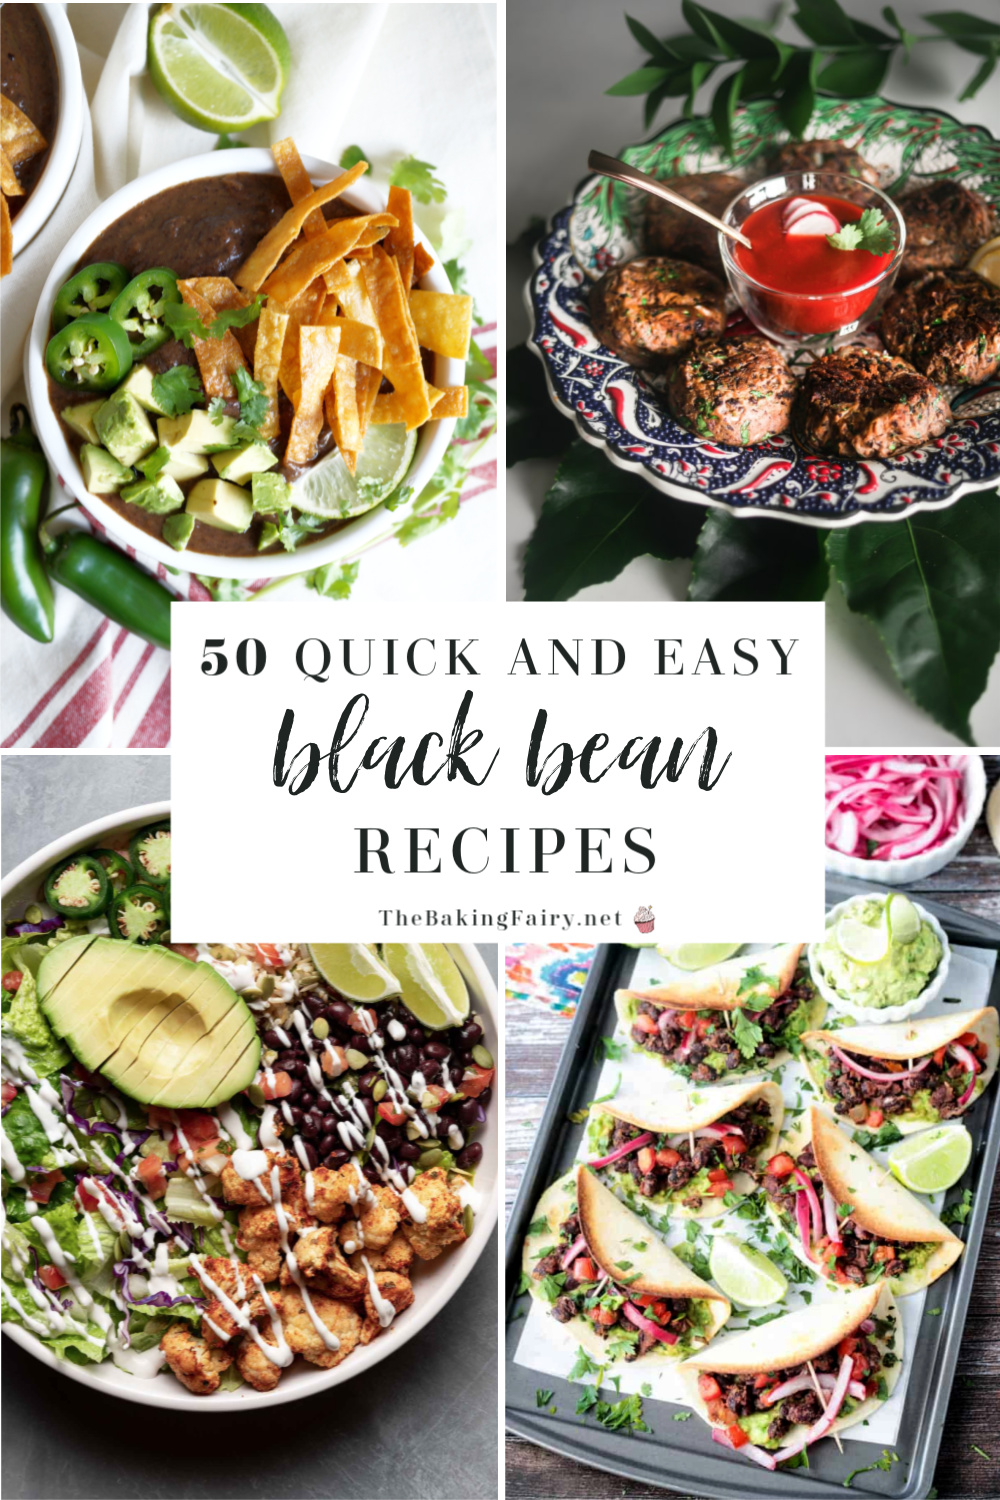 50 Vegetarian Friendly Black Bean Recipes The Baking Fairy